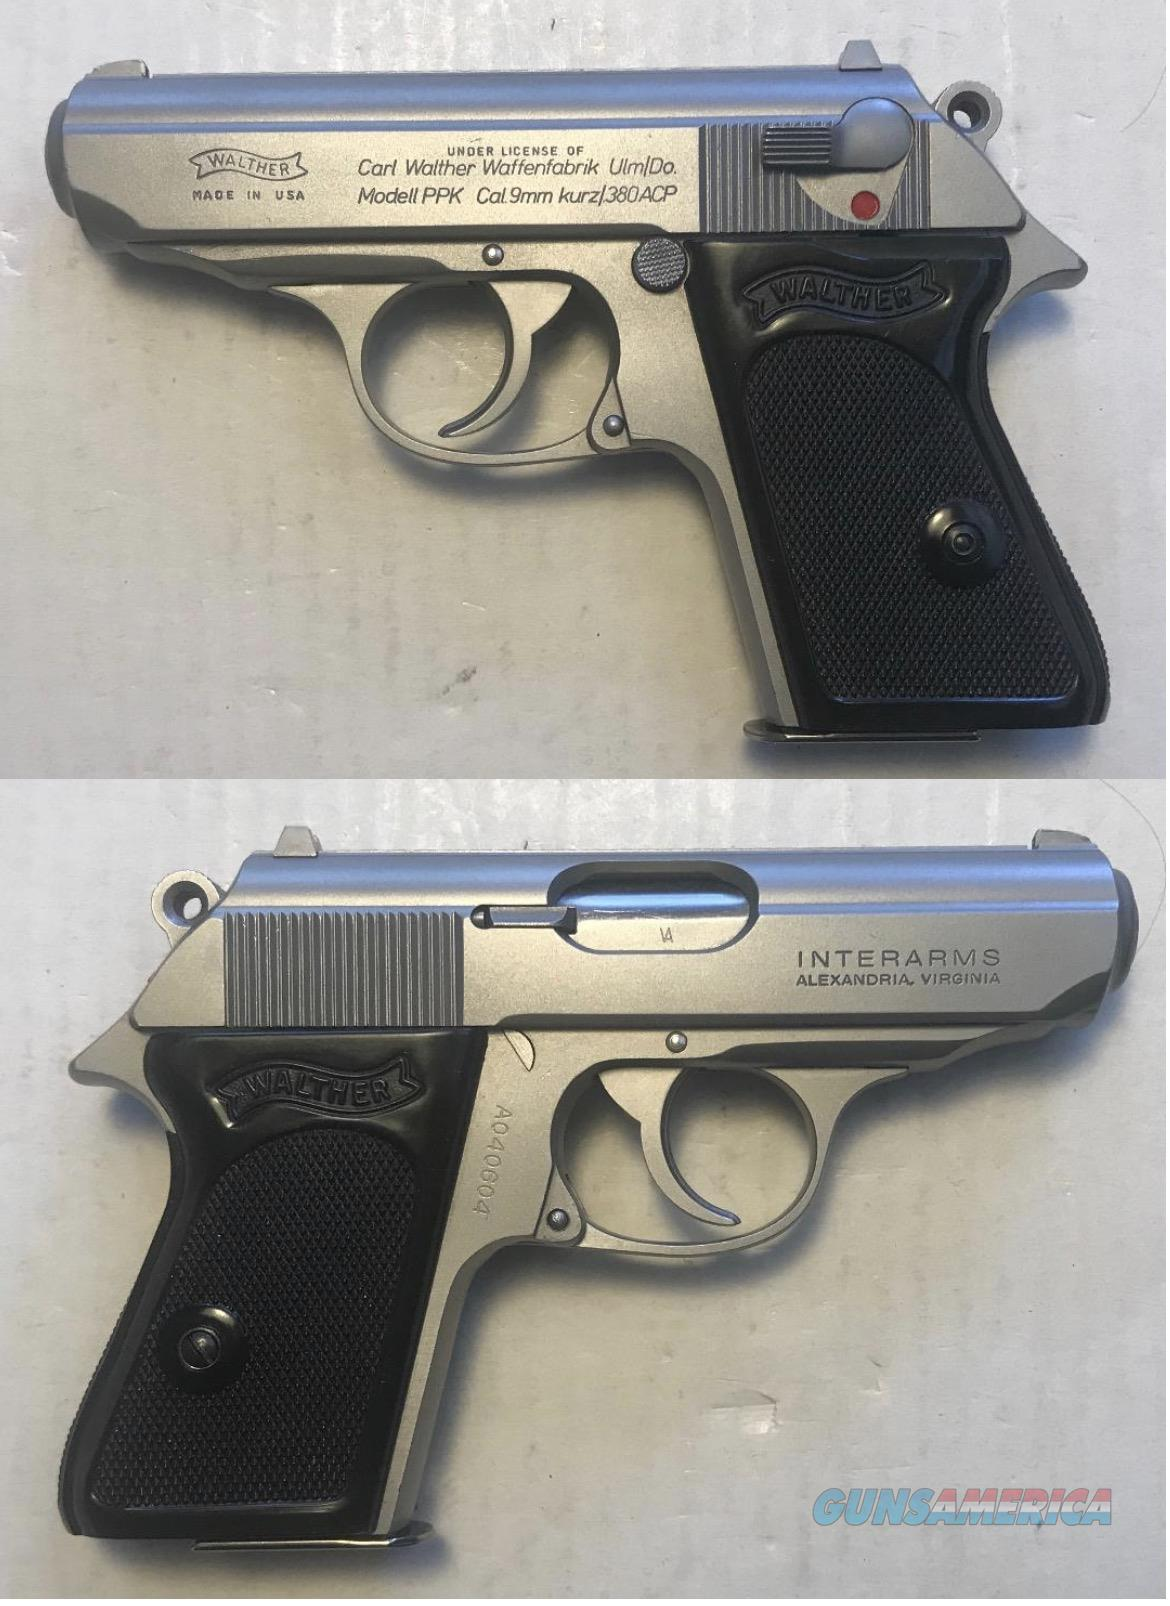 Walther/Interarms Model PPK Stainless .380  Guns > Pistols > Walther Pistols > Post WWII > PPK Series